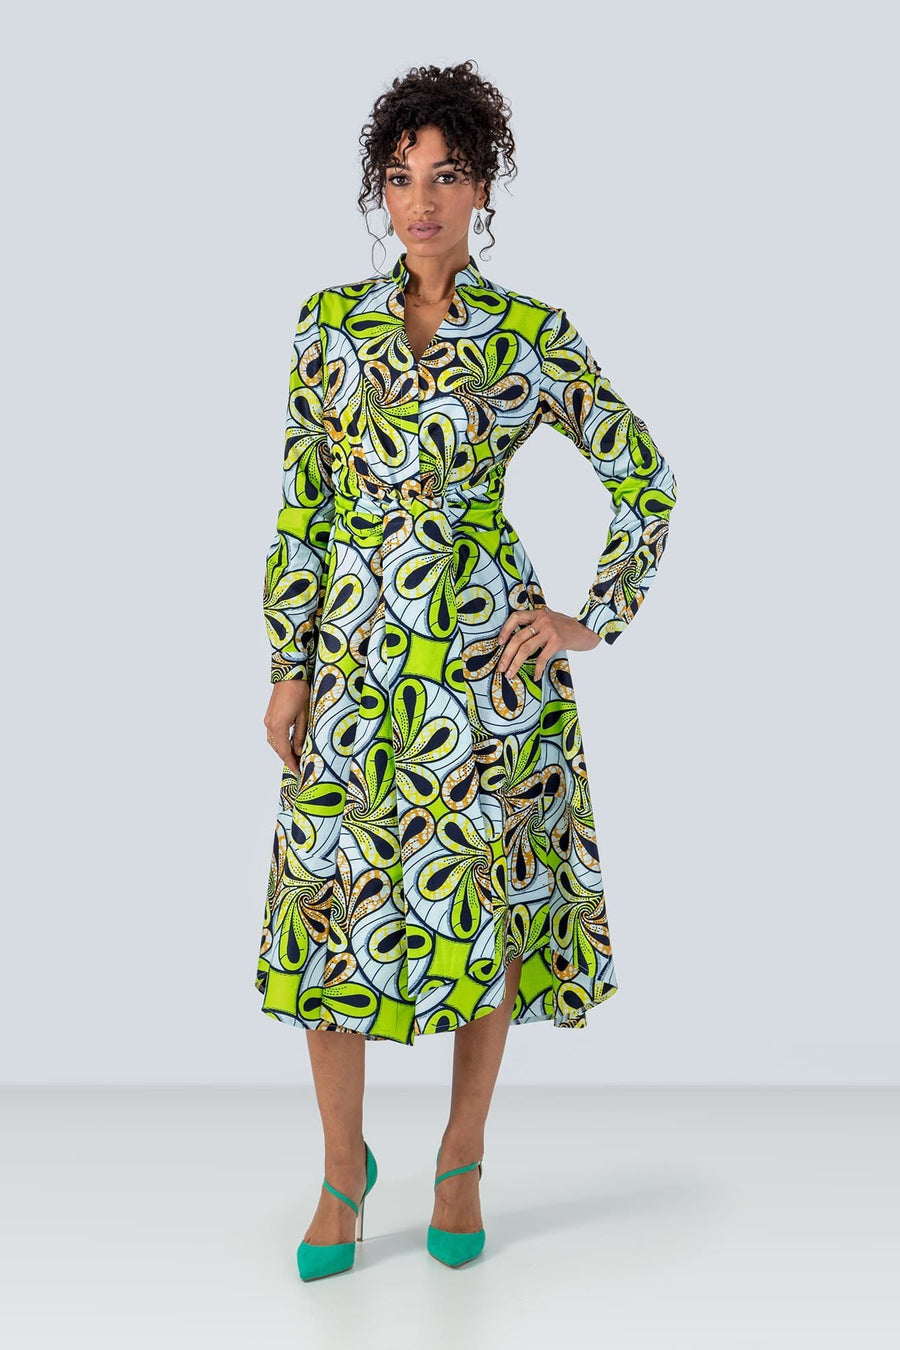 Pozou Long Sleeves Floral Green African Print Shirt Dress